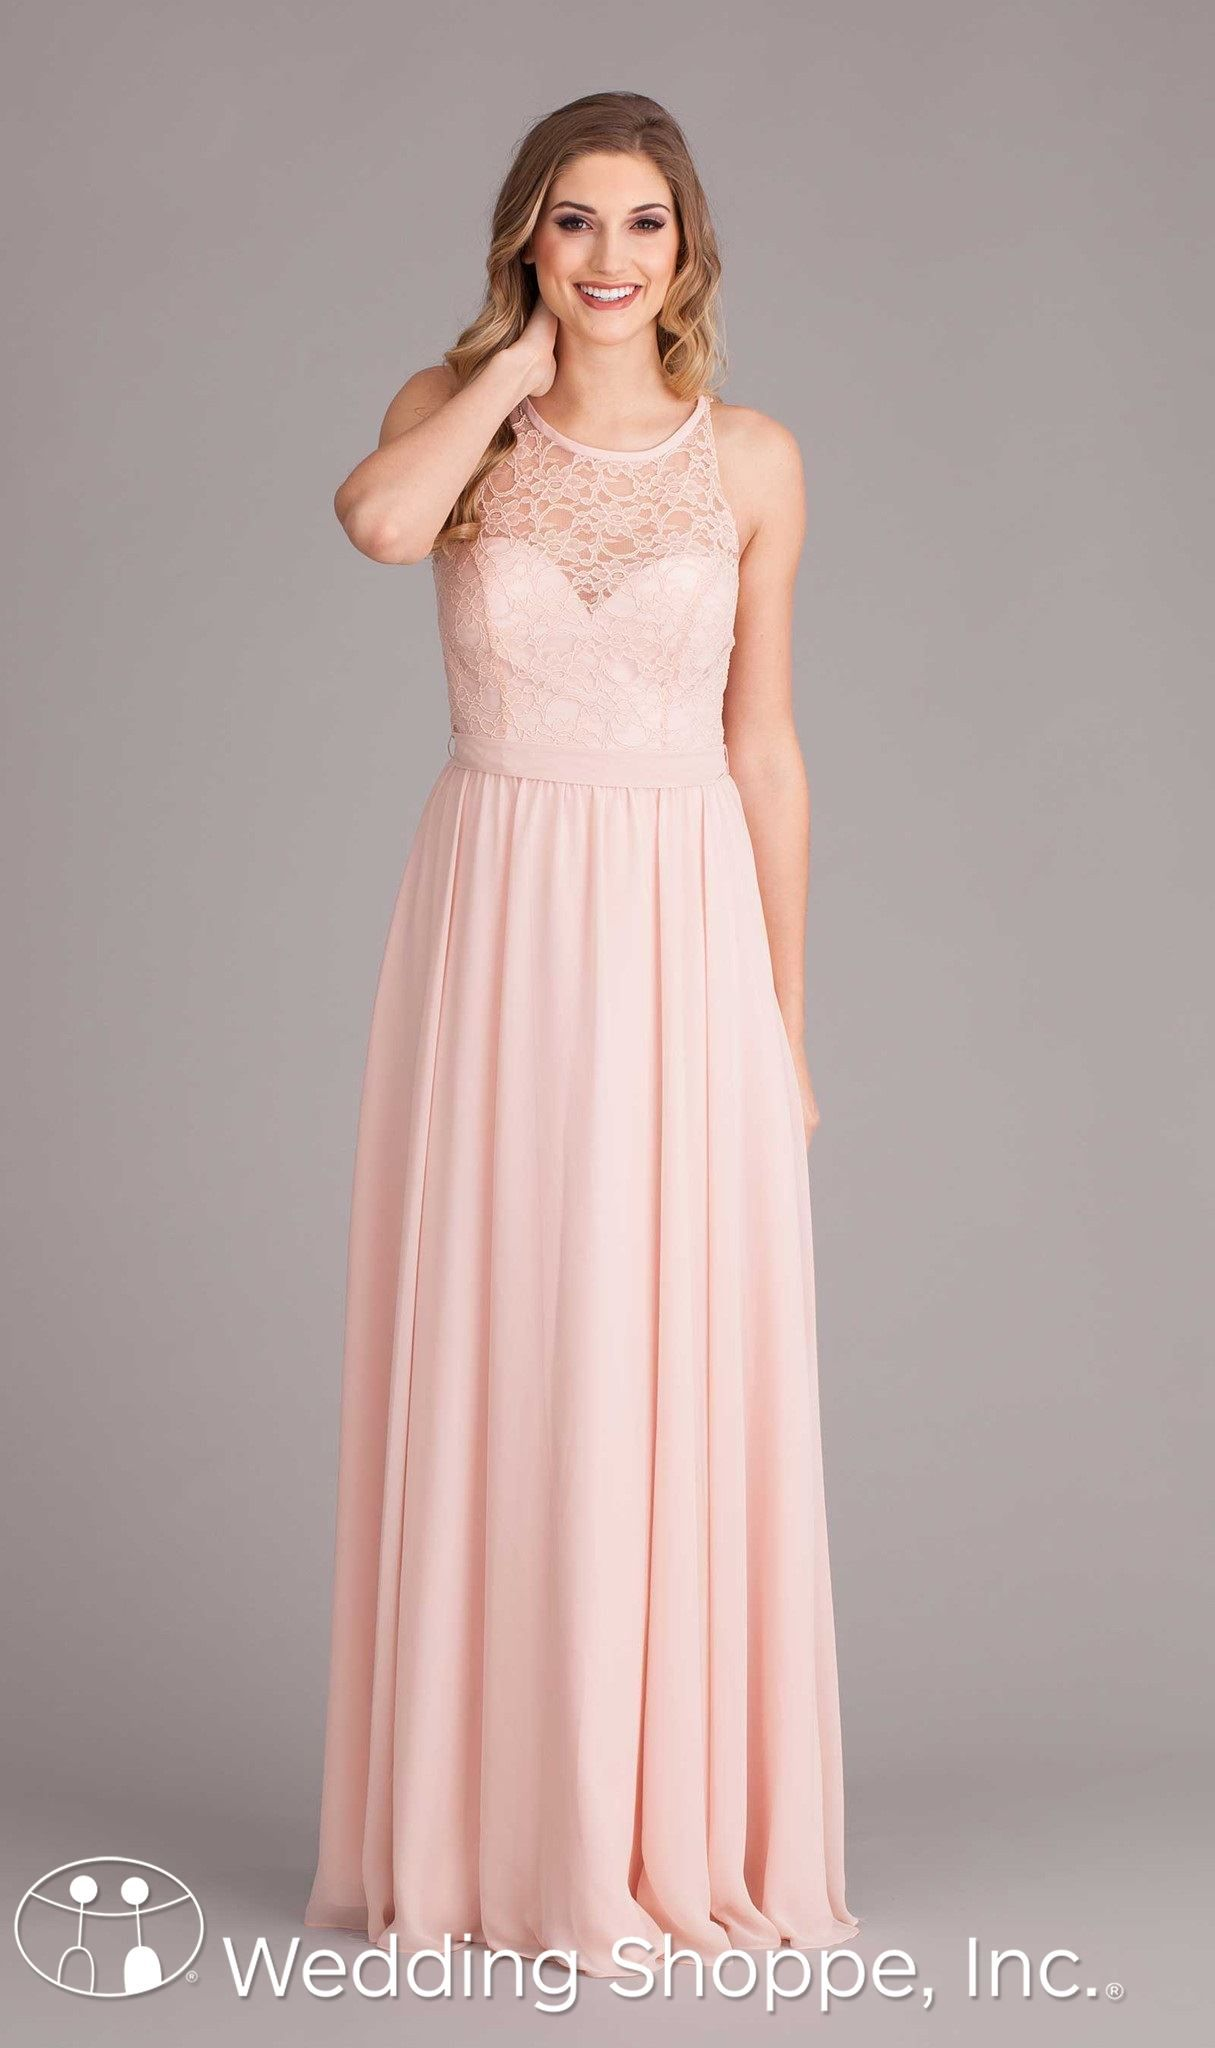 Kennedy Blue Bridesmaid Dress Delilah / 28203 | Maid of Honor Looks ...